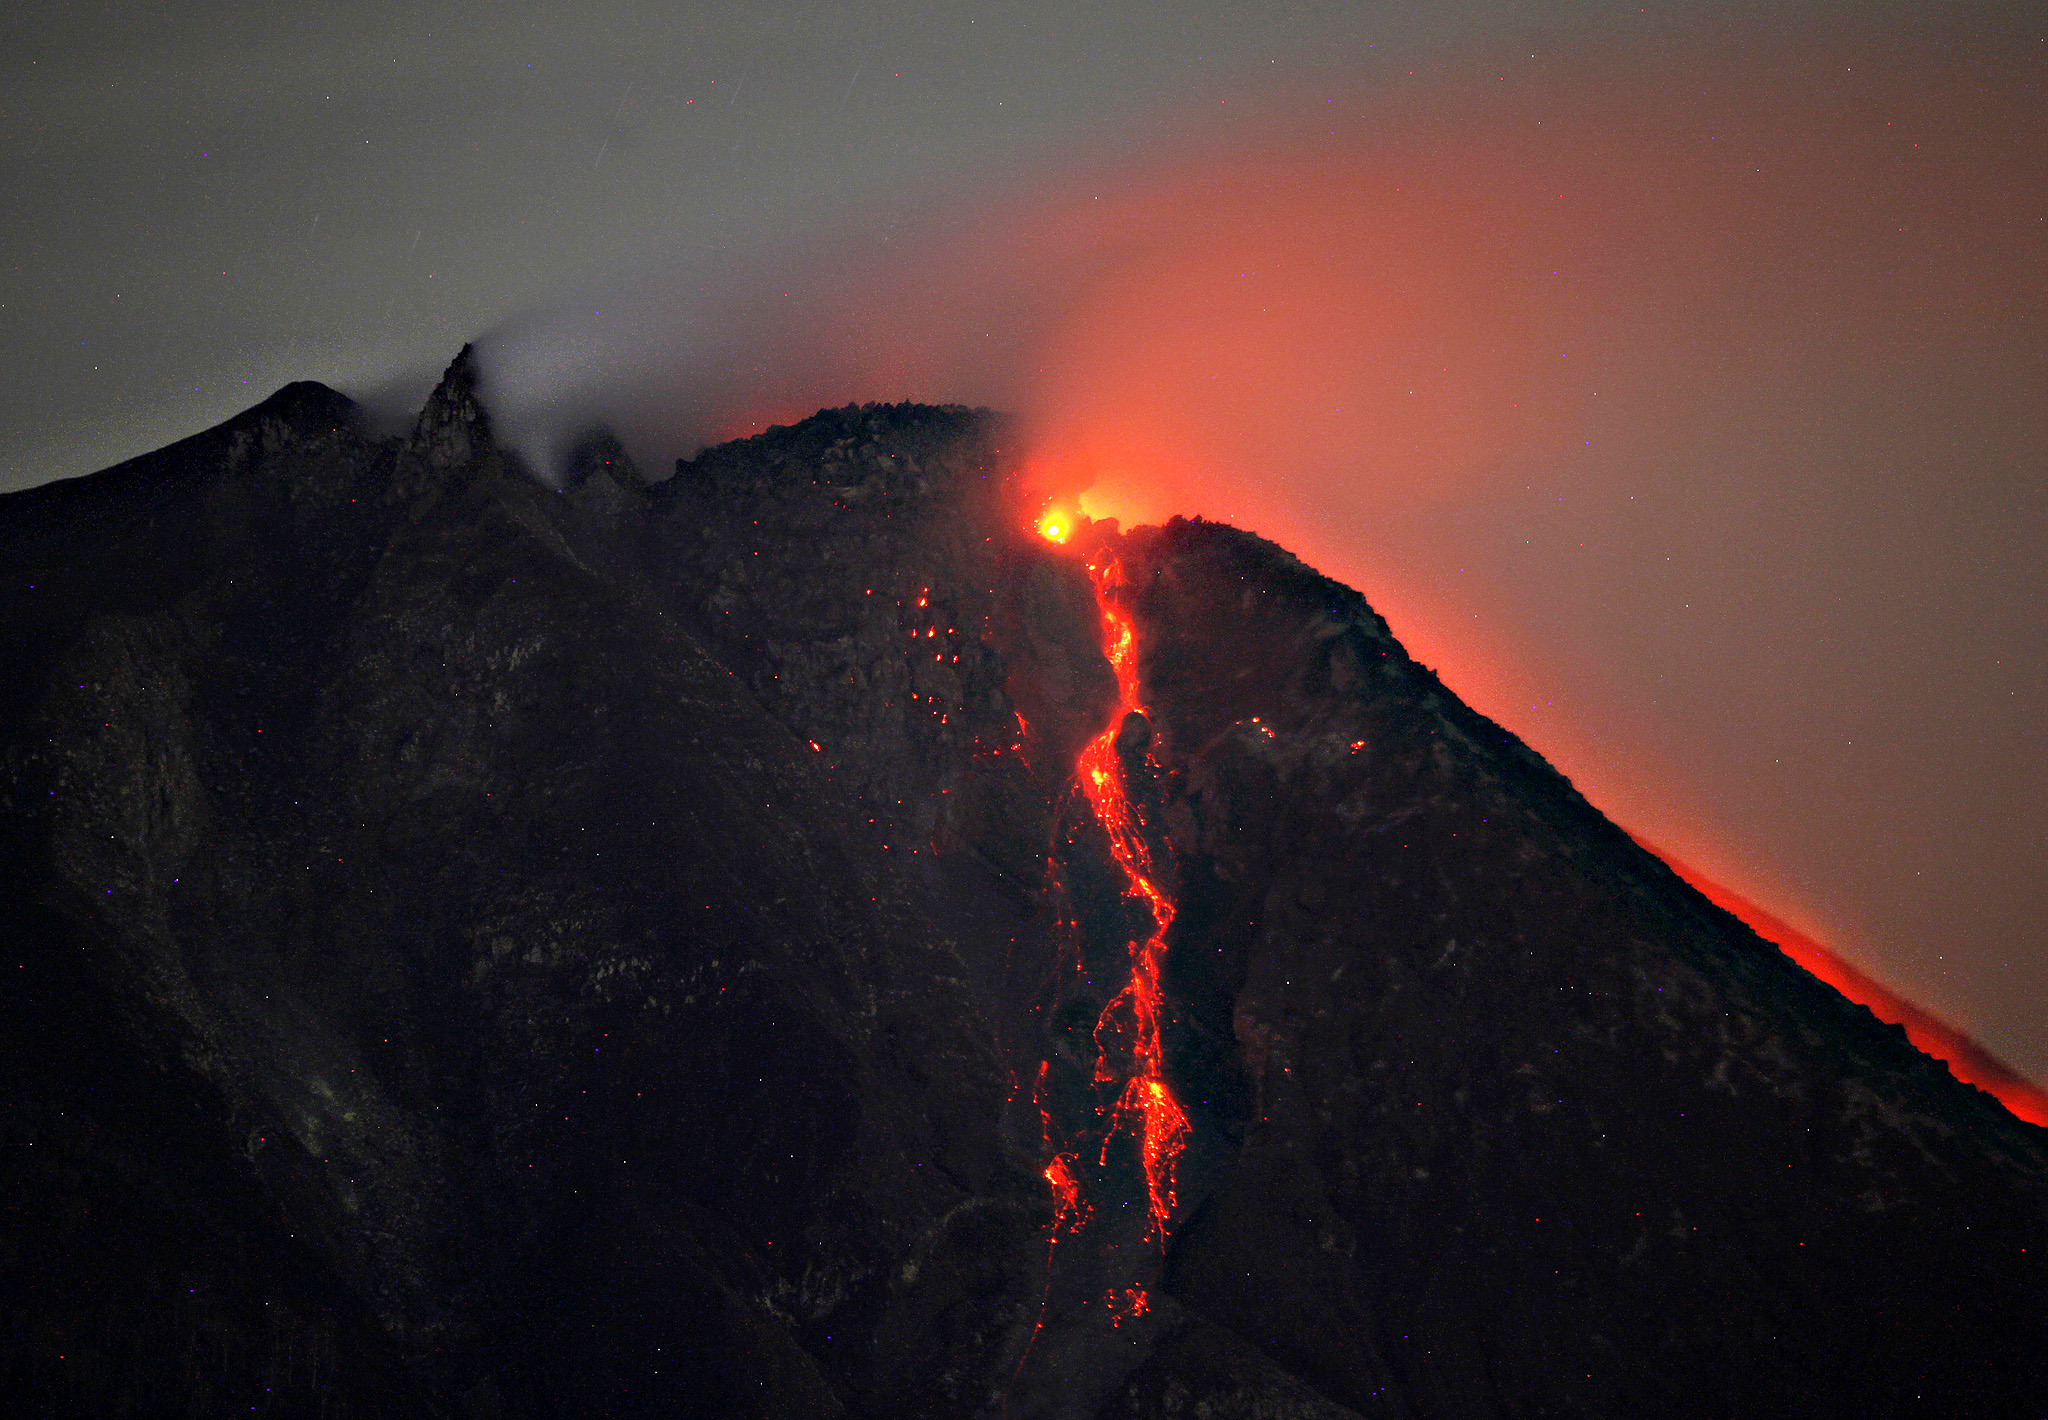 Hot lava flows from the crater of Mount Sinabung as seen from Tiga Pancur, North Sumatra, Indonesia, early Thursday. Mount Sinabung, one of about 130 active volcanoes in the country, has been put at the highest alert level since June 2 due to the growing size of its lava dome.